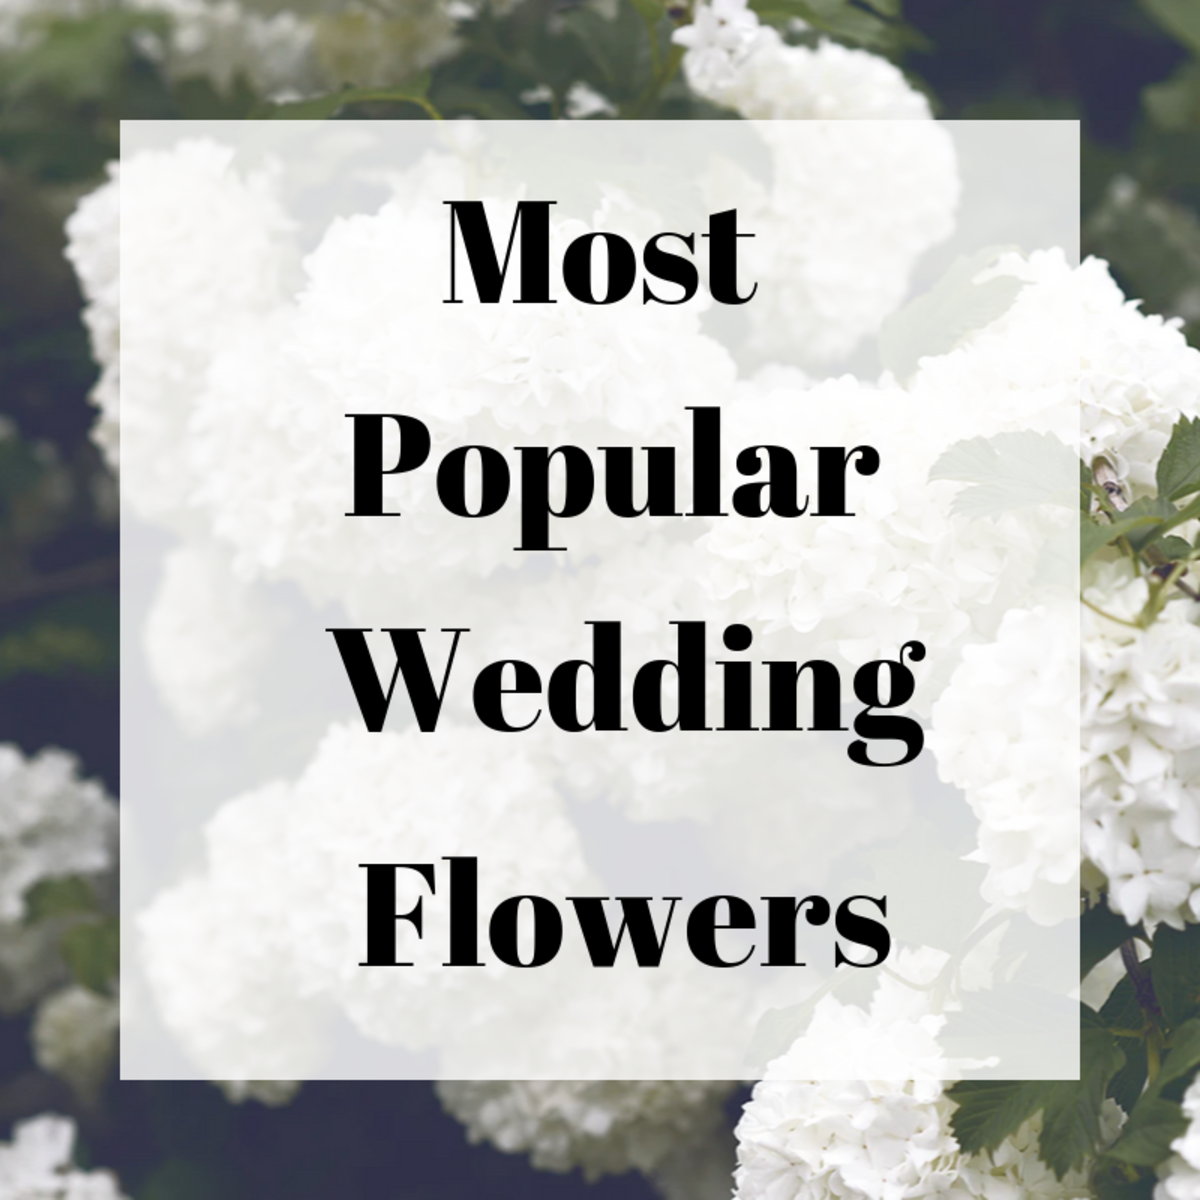 10 Of The Most Popular Wedding Flowers And What You Should